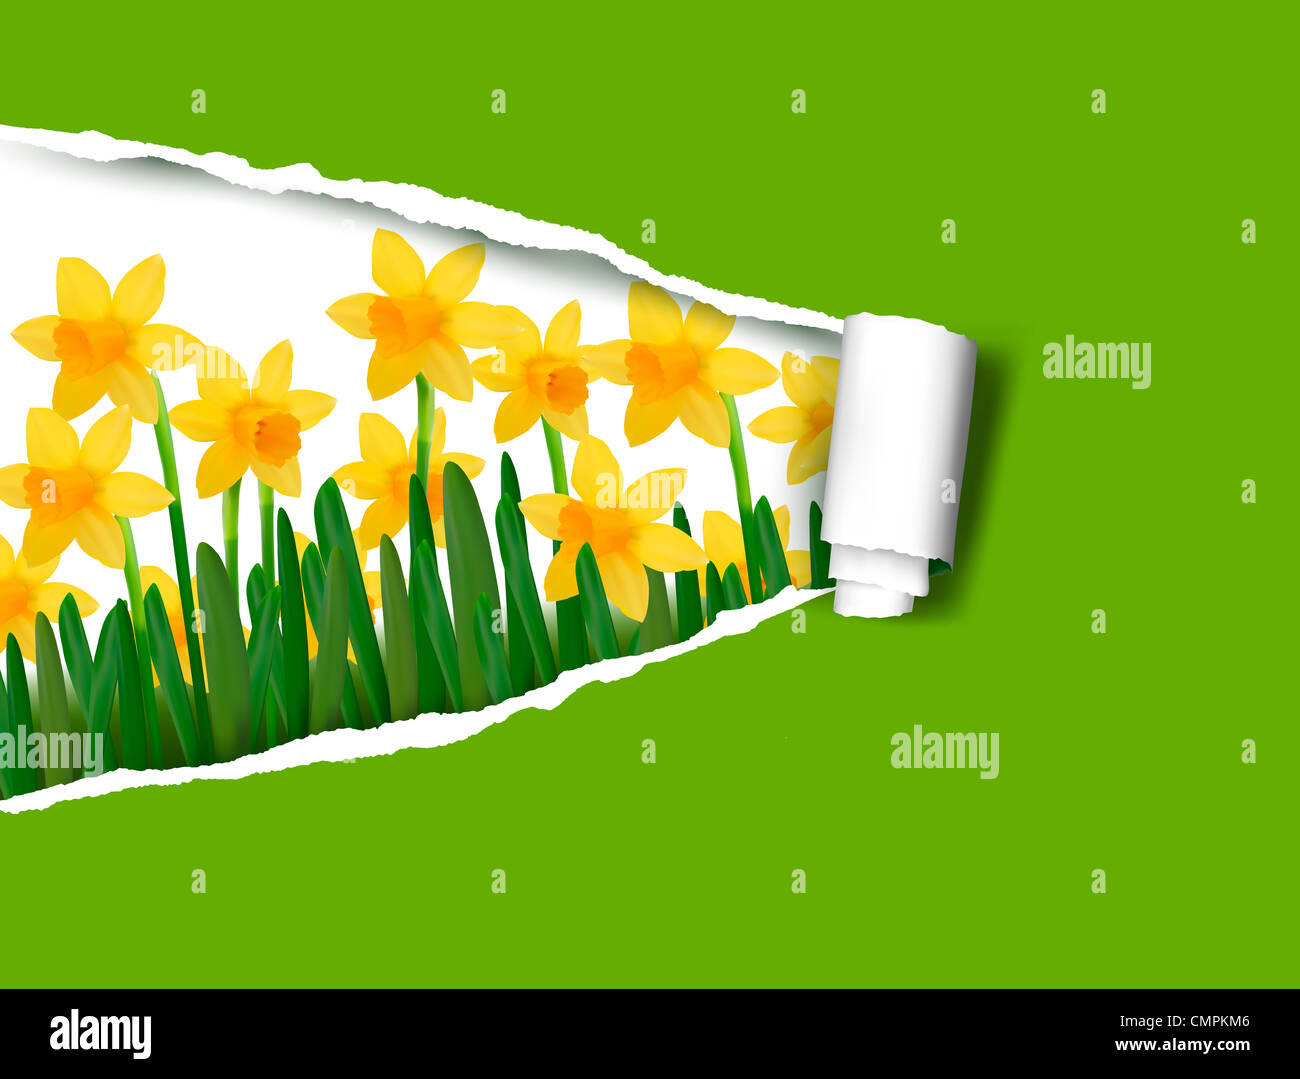 Daffodils background with ripped paper. - Stock Image